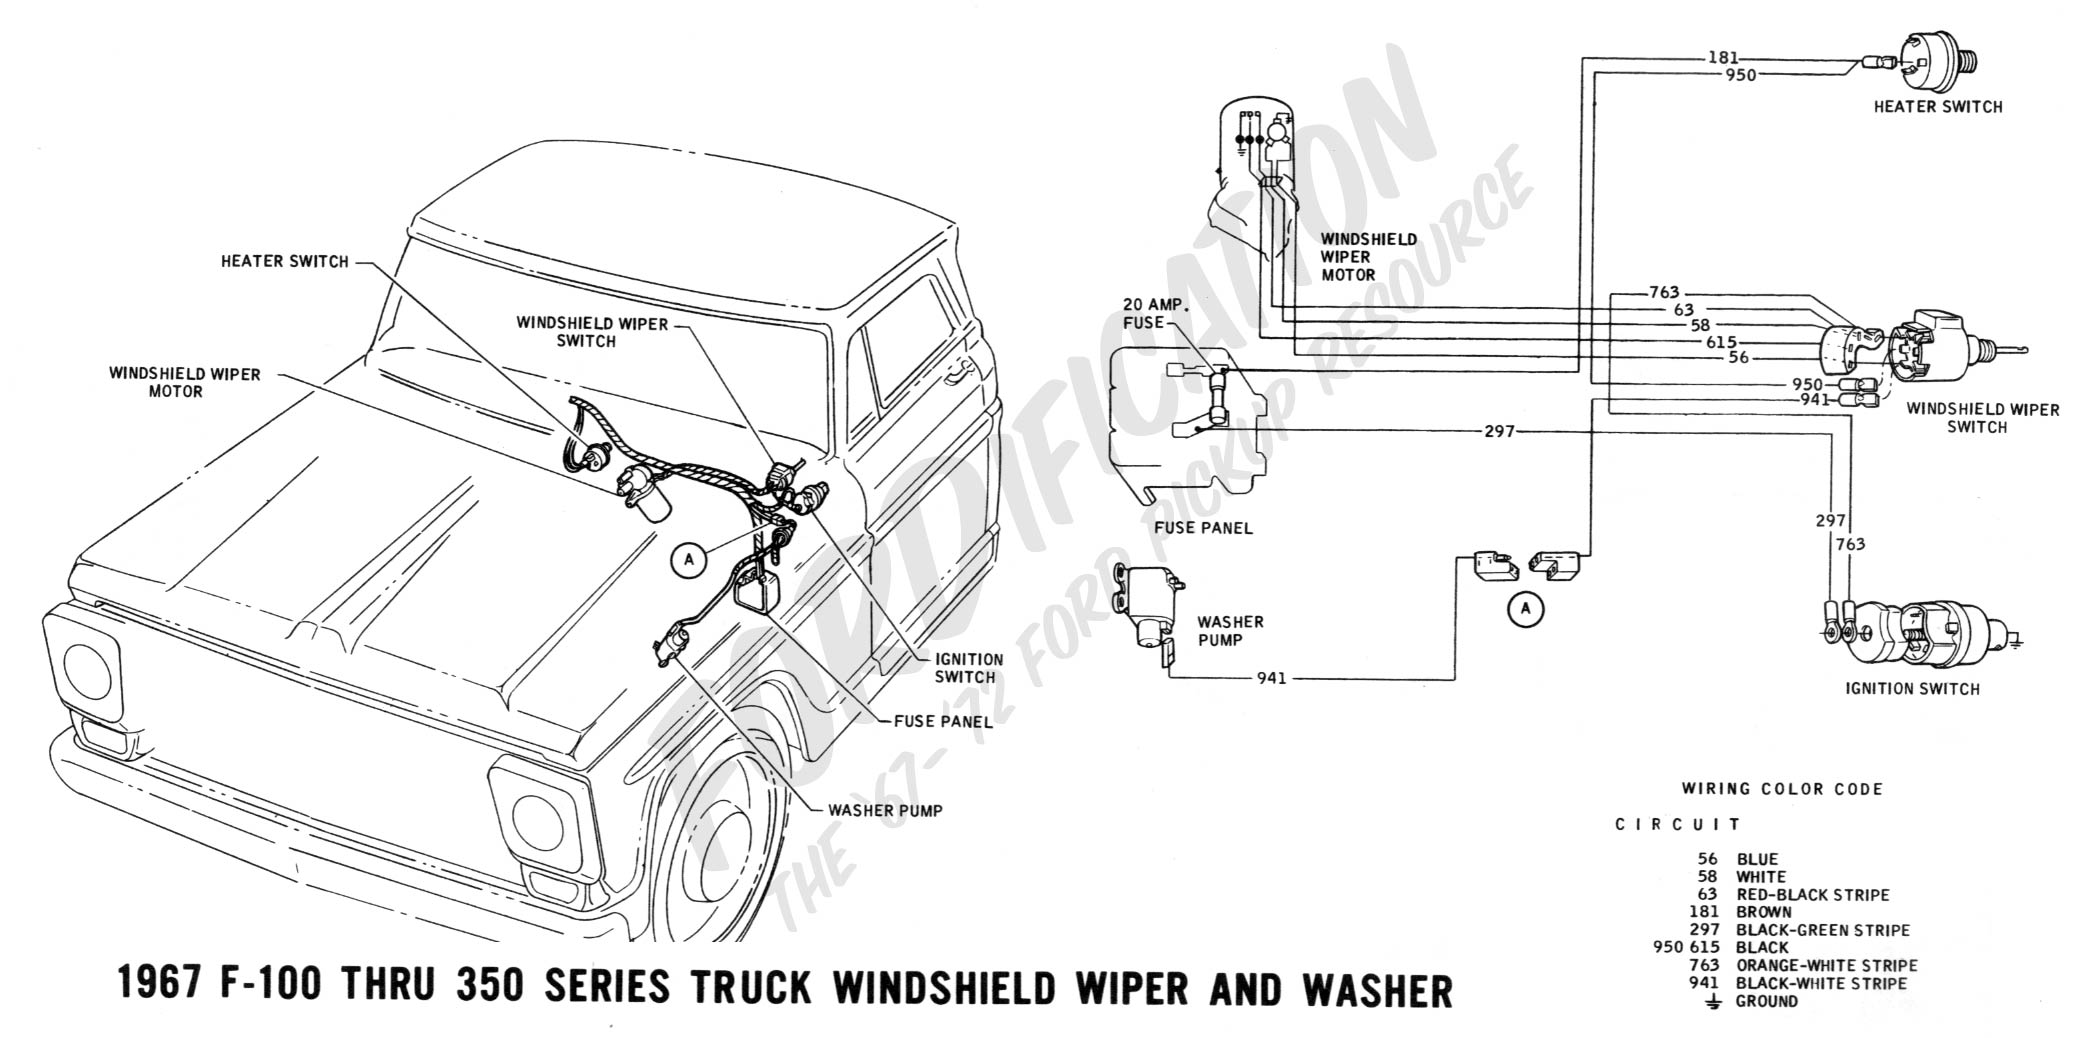 wiring 1967wipers ford truck technical drawings and schematics section h wiring wiper motor wiring diagram for 1965 gto at creativeand.co